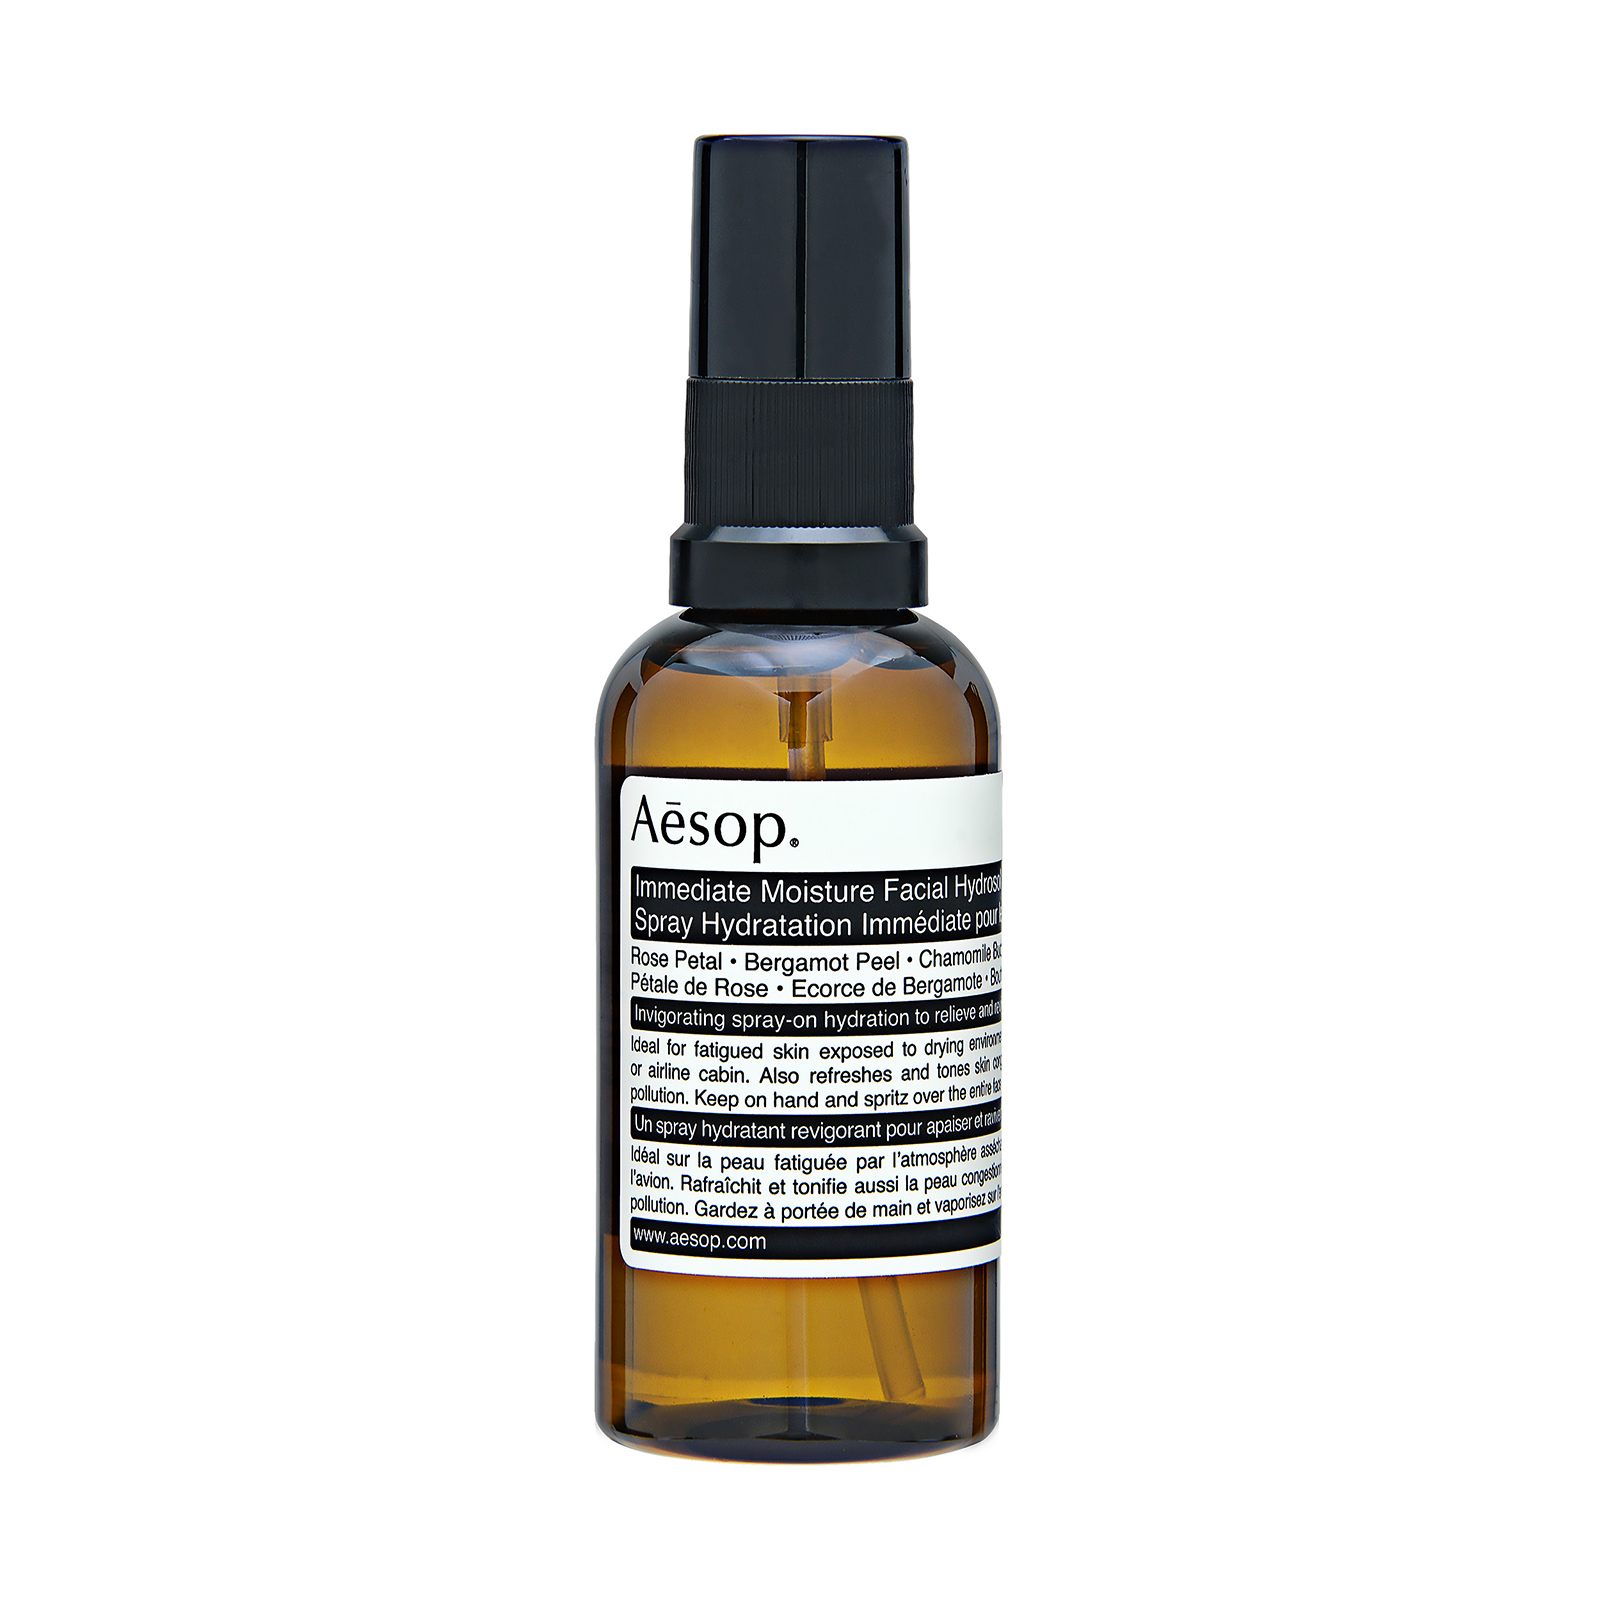 Aesop Immediate Moisture Facial Hydrosol has the following features:A refreshing, aromatic, spray-on hydration for all skin types. A rose petal-infused spritzing hydrator to refresh and revive skin and mind.  Ideal for those journeying long-distance and those who spend exhausting hours at their desks craving sensory stimulation.